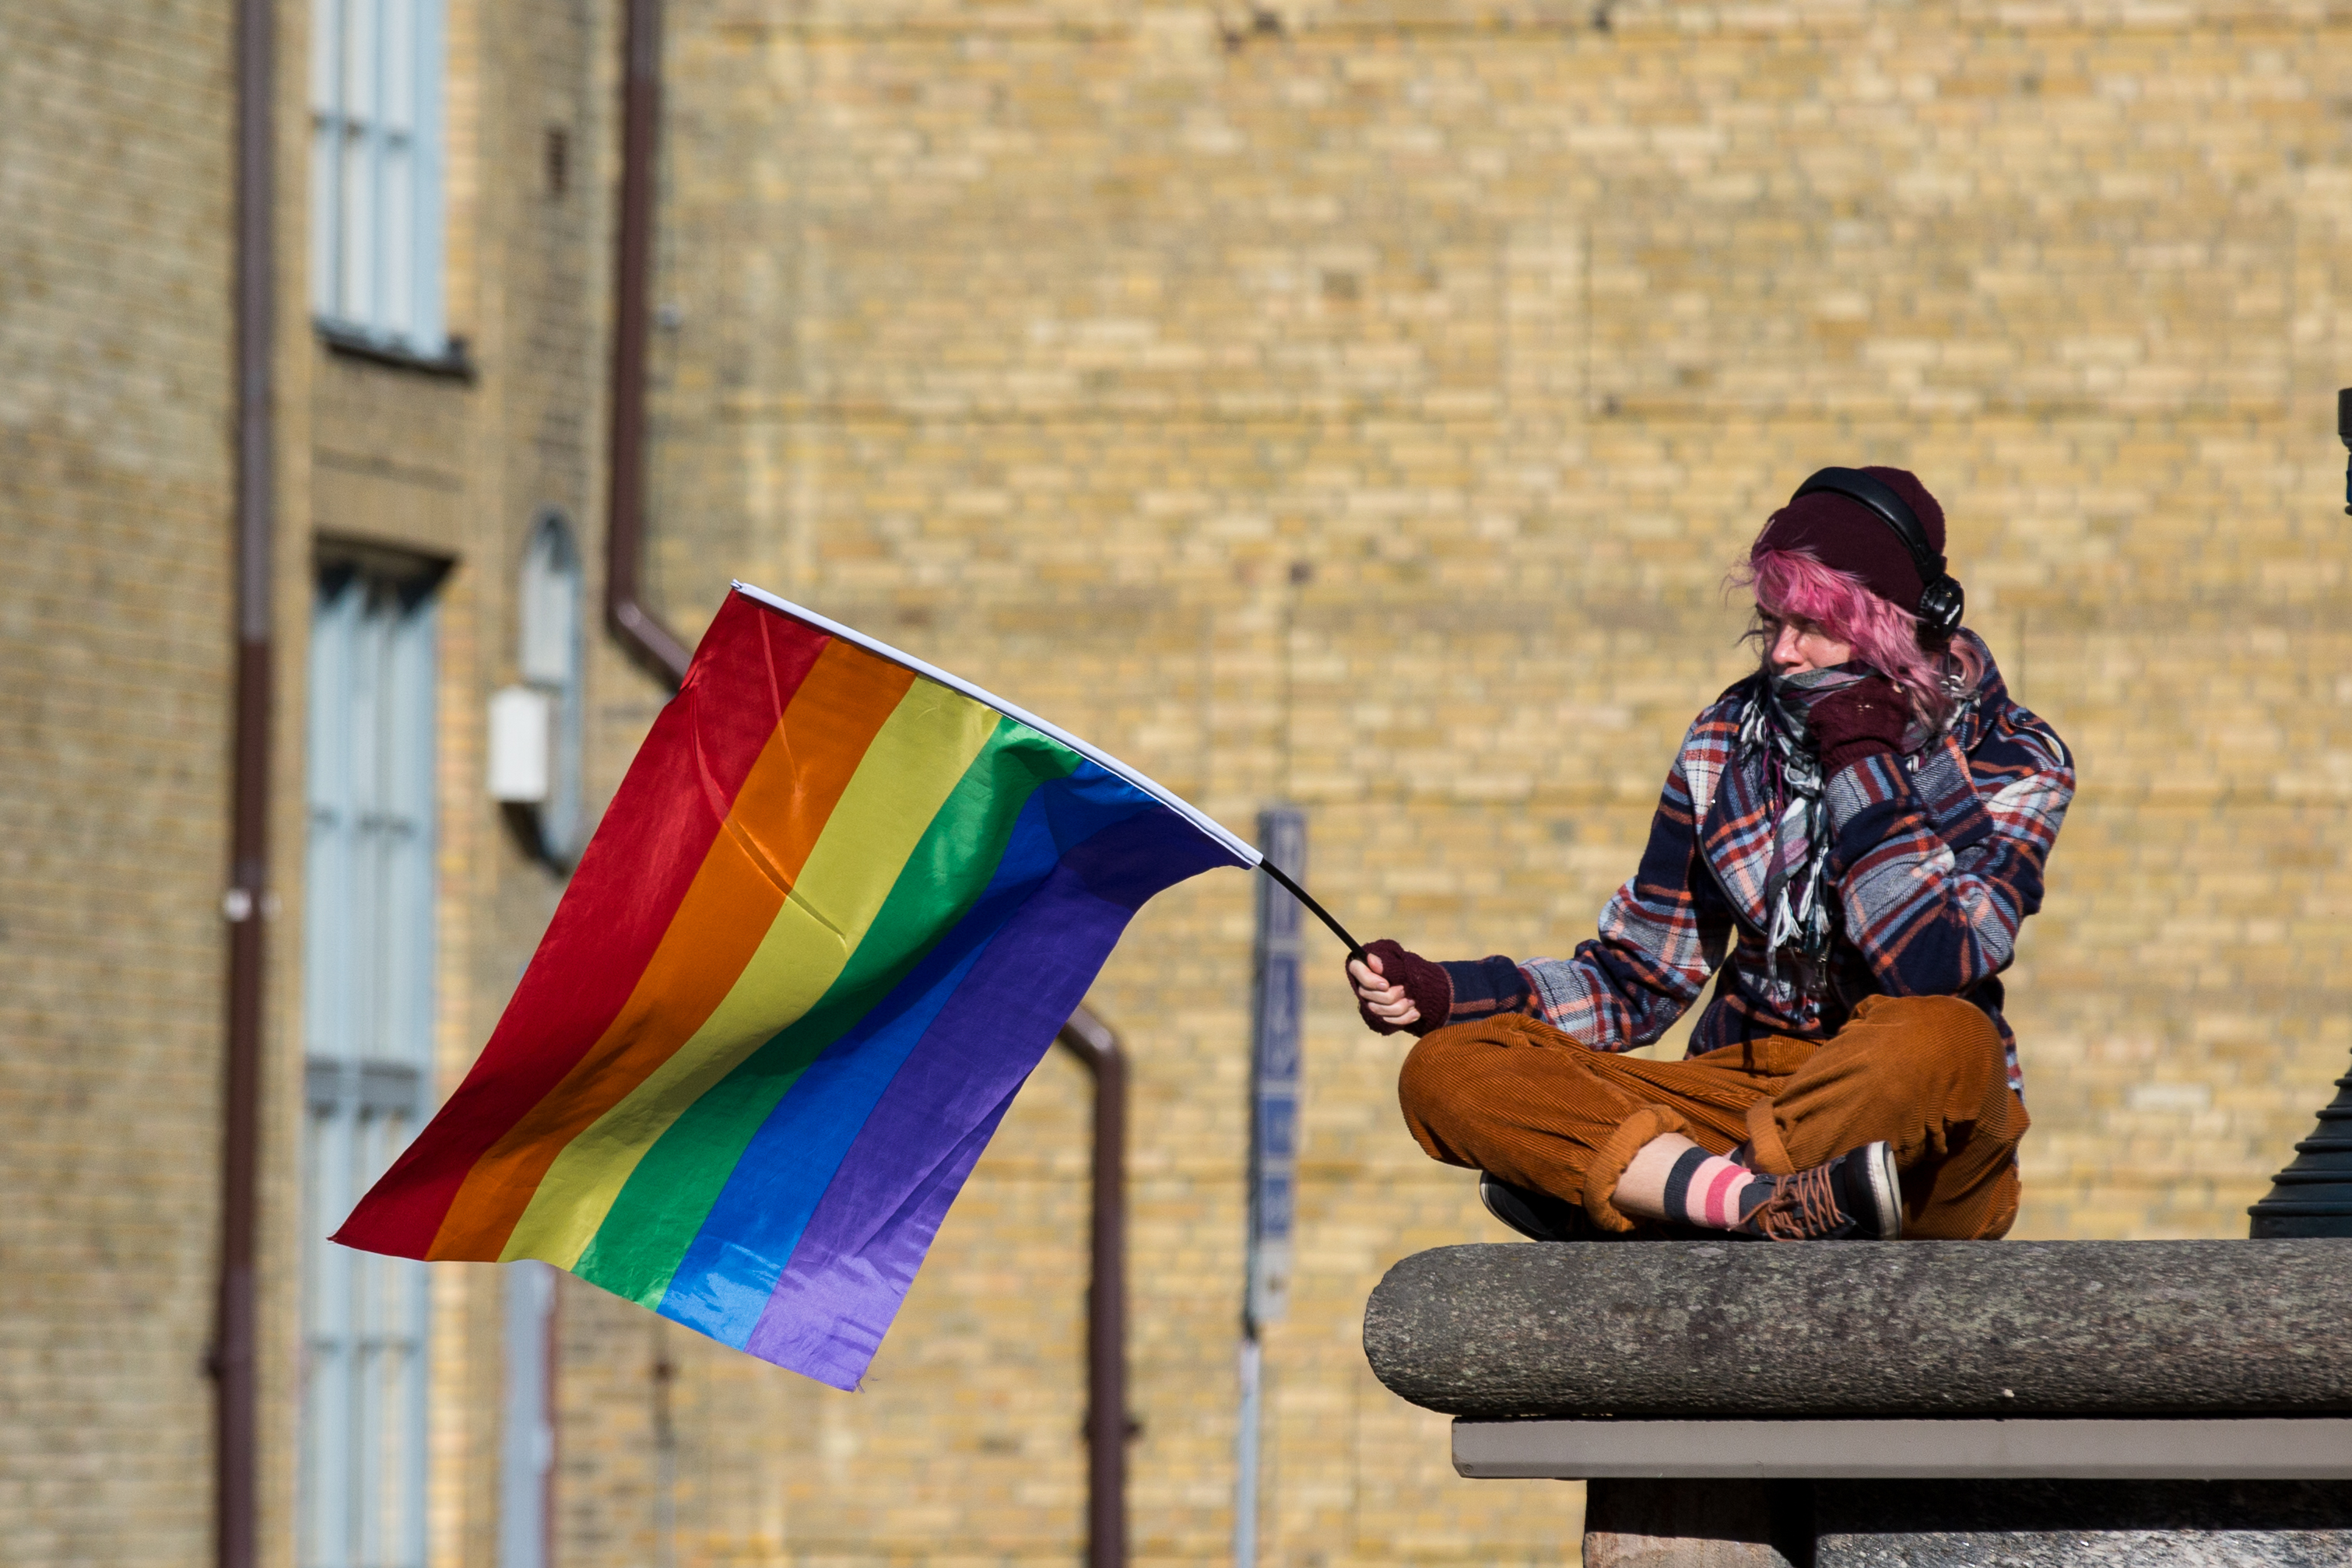 A woman siting on a building ledge holds an LGBT rainbow flag on a stick.